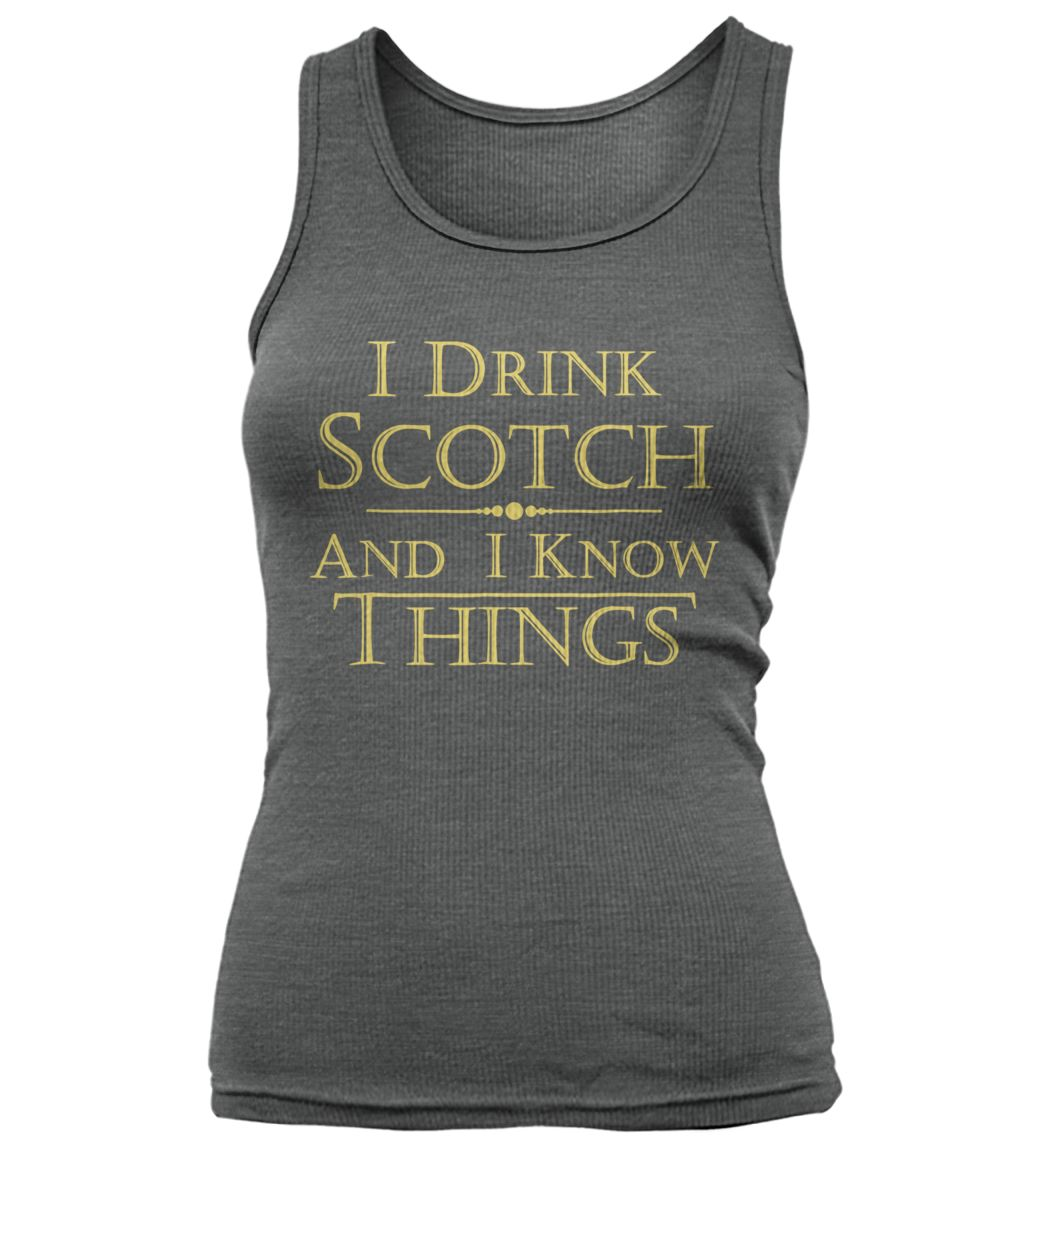 I drink scotch and I know things game of thrones women's tank top